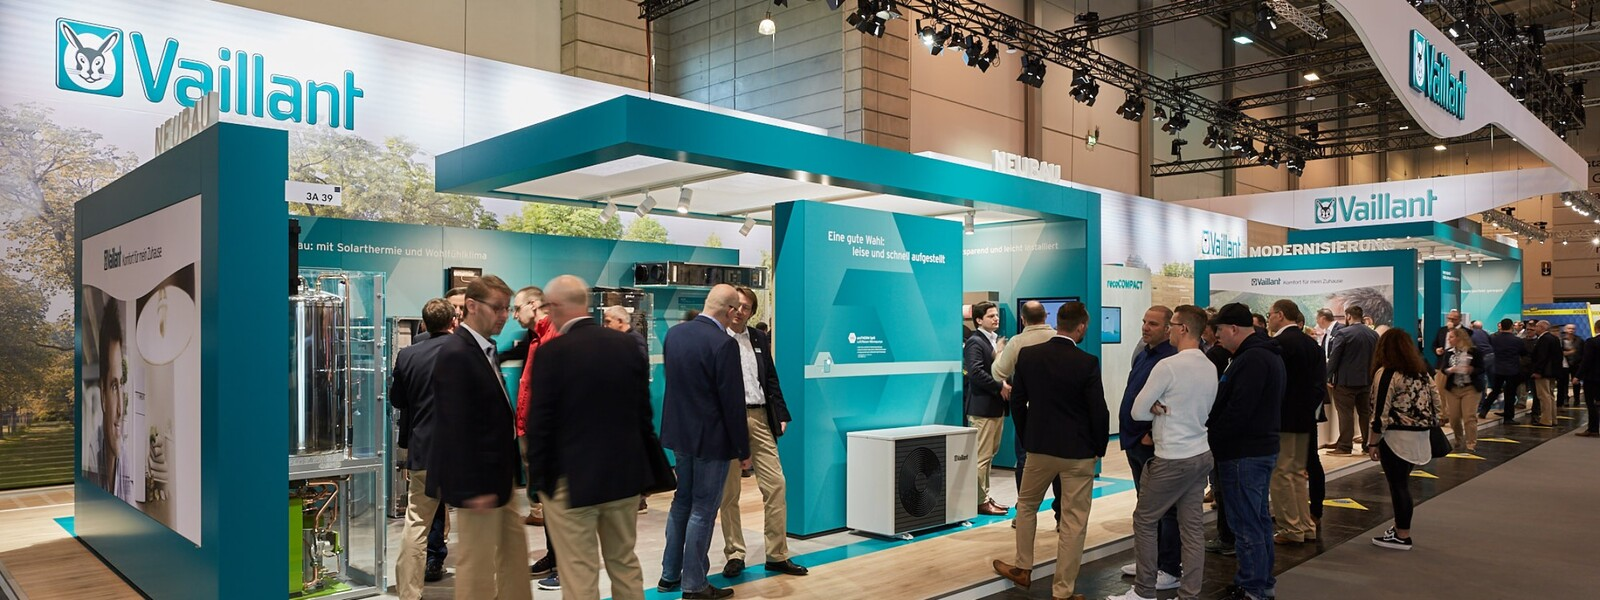 https://www.vaillant-group.com/newsroom/pressemitteilungen/2018/shk-2018/vaillant-shk-2018-messestand-1169706-format-24-9@1600@desktop.jpg